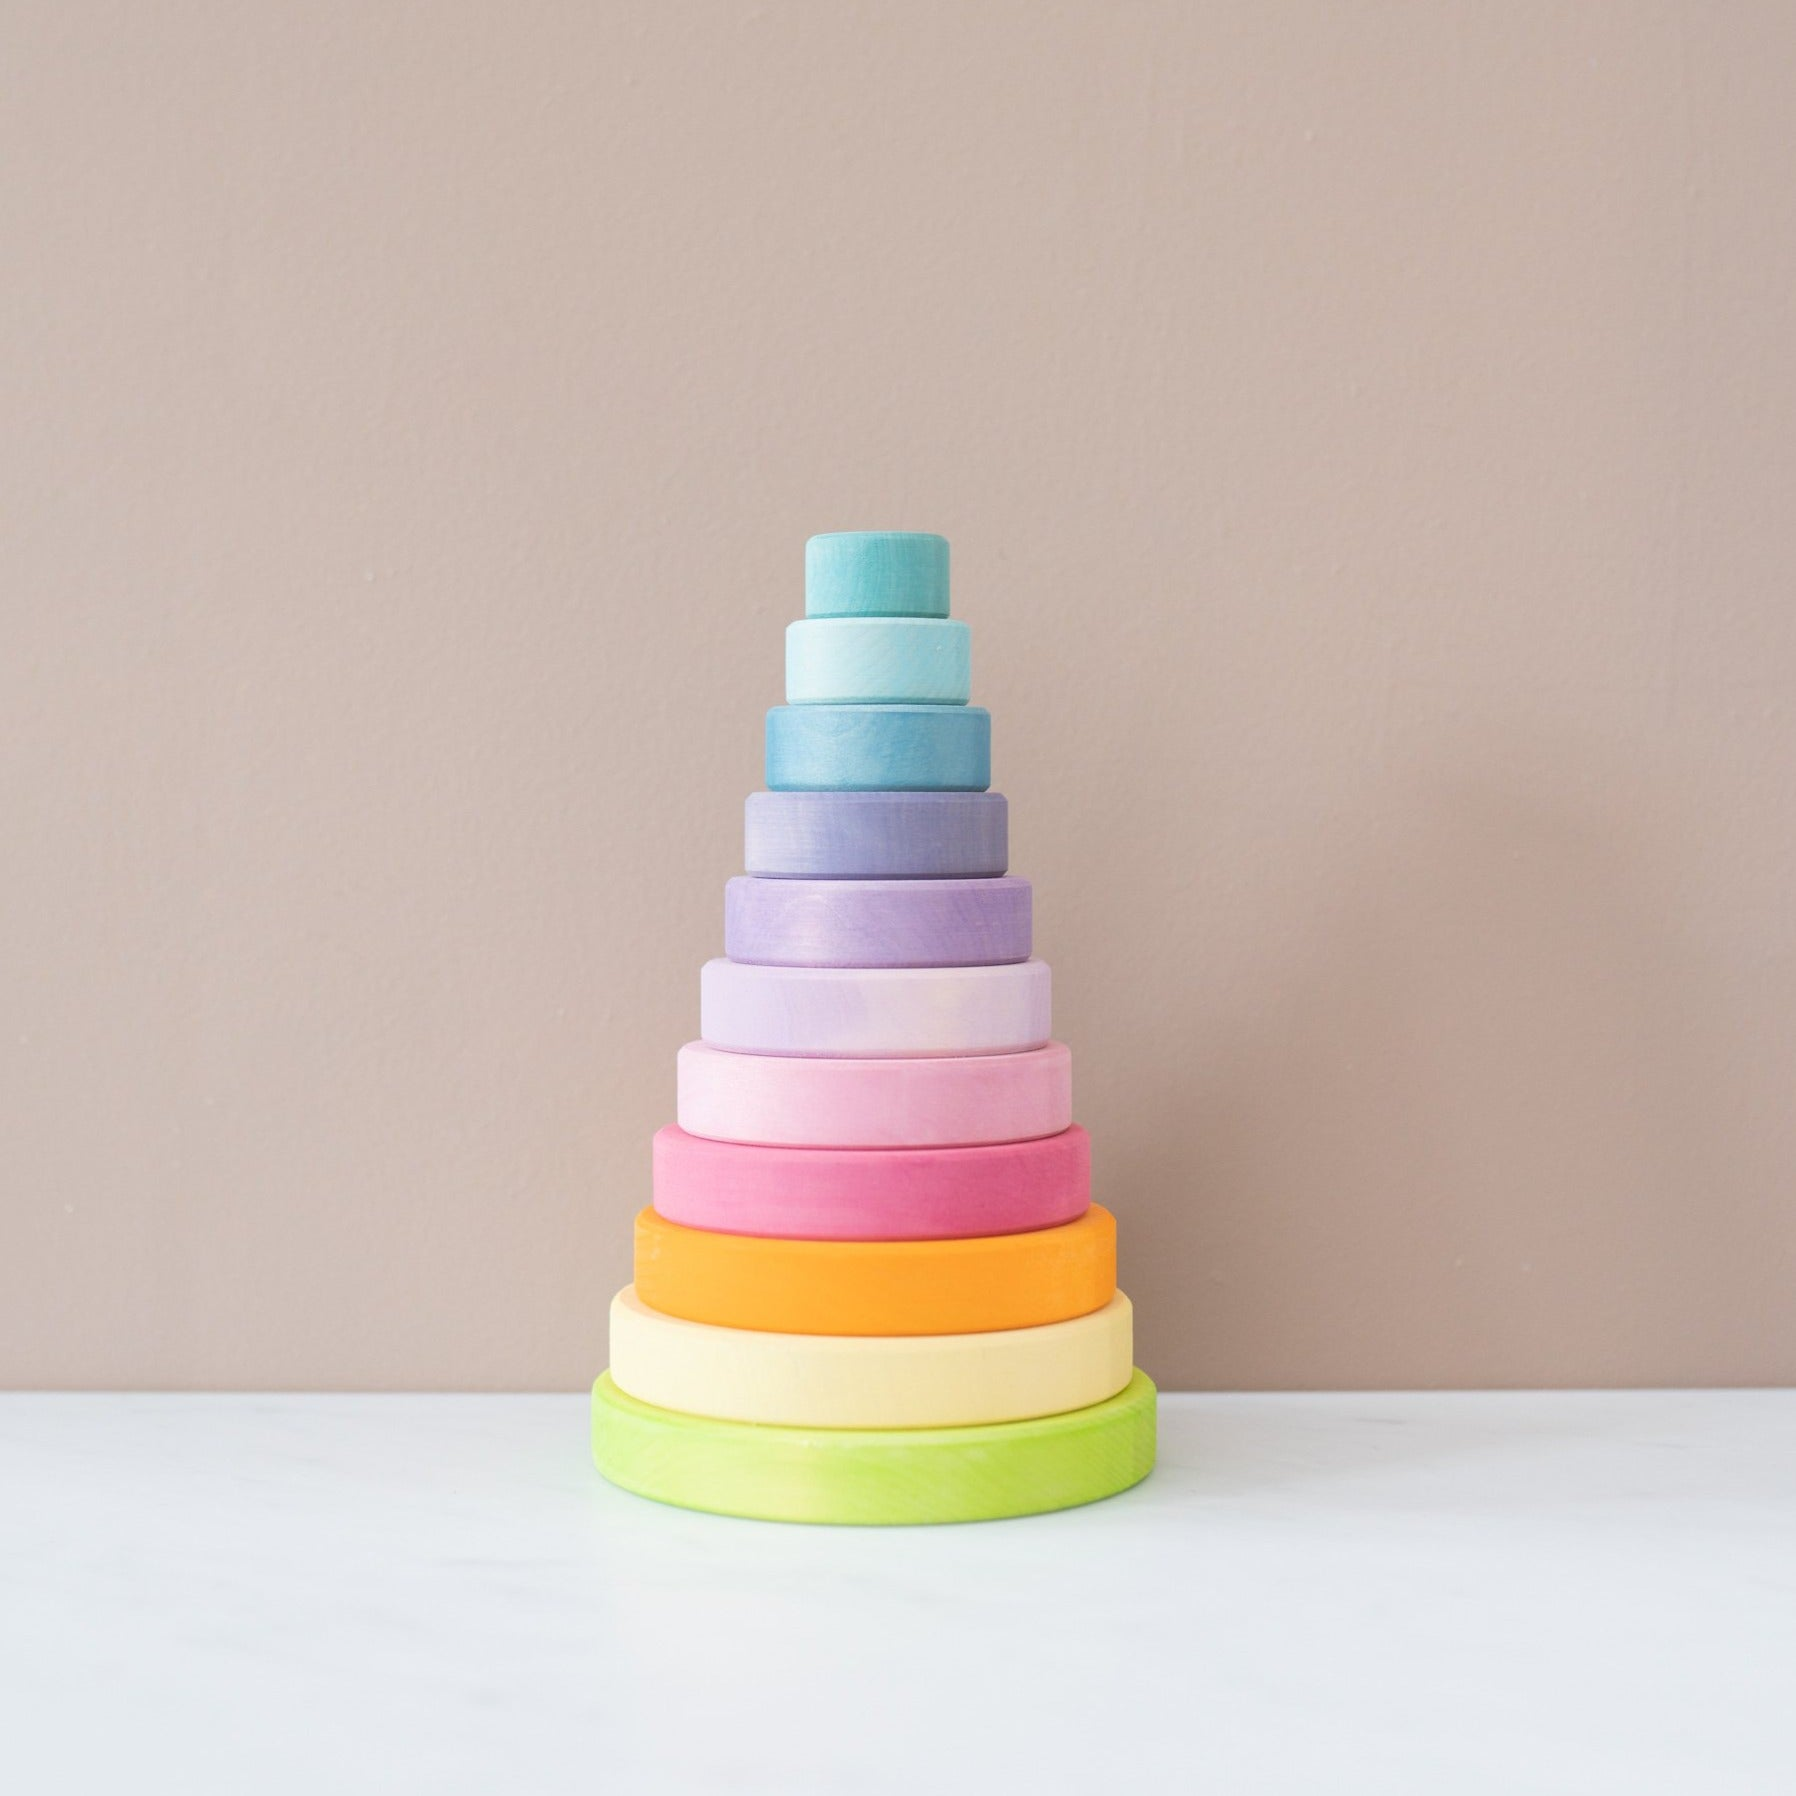 Pastel Stacking Tower